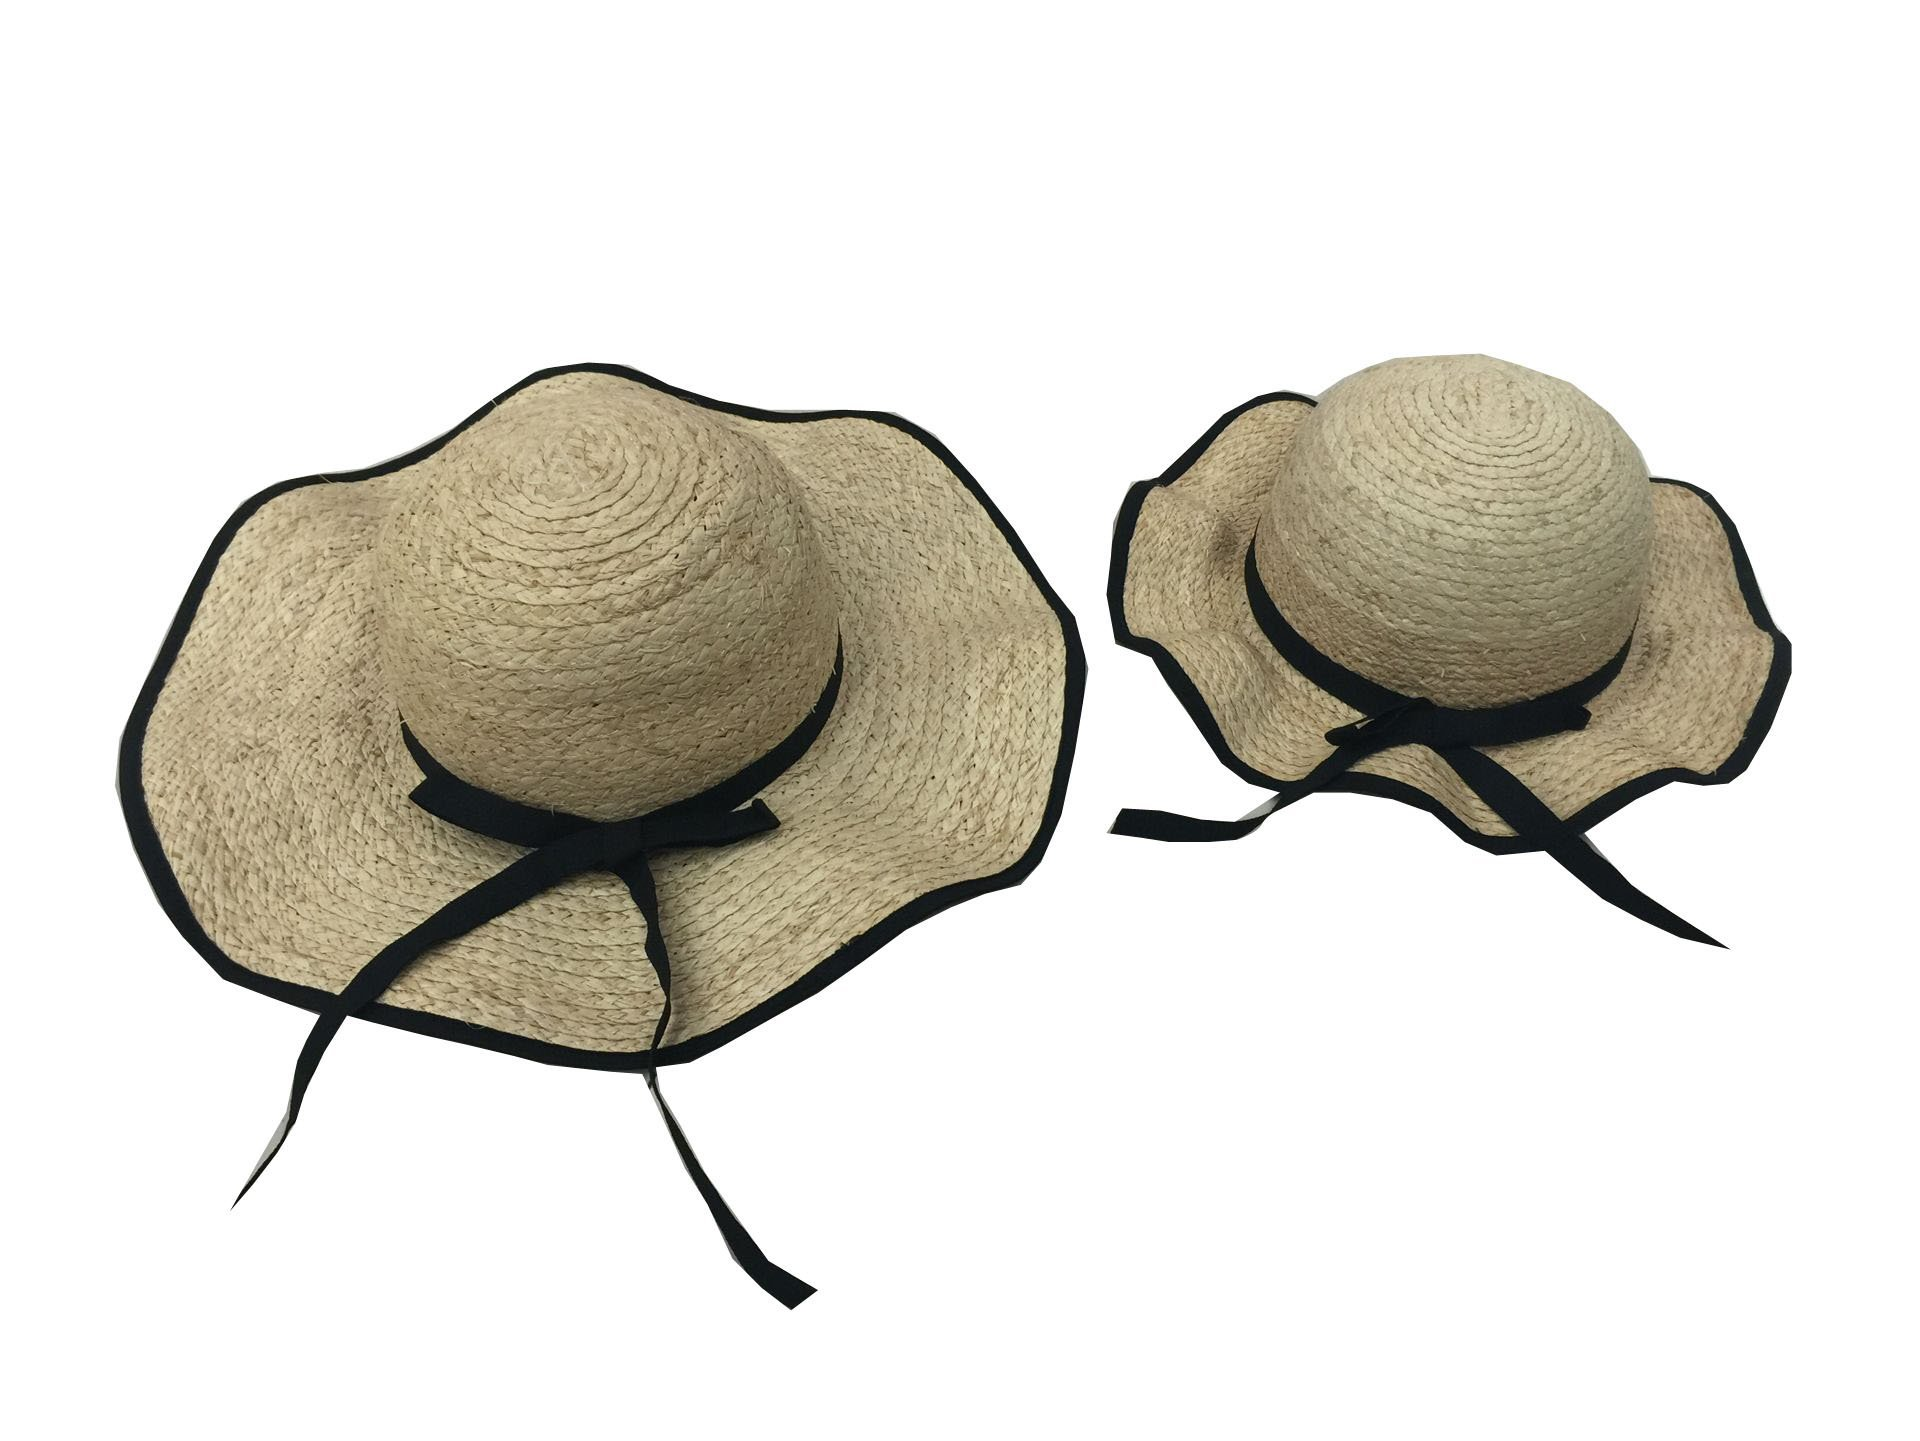 YueLian Mom and Daughter's Matching Summer Ribbon Sun Hats Set Off-White